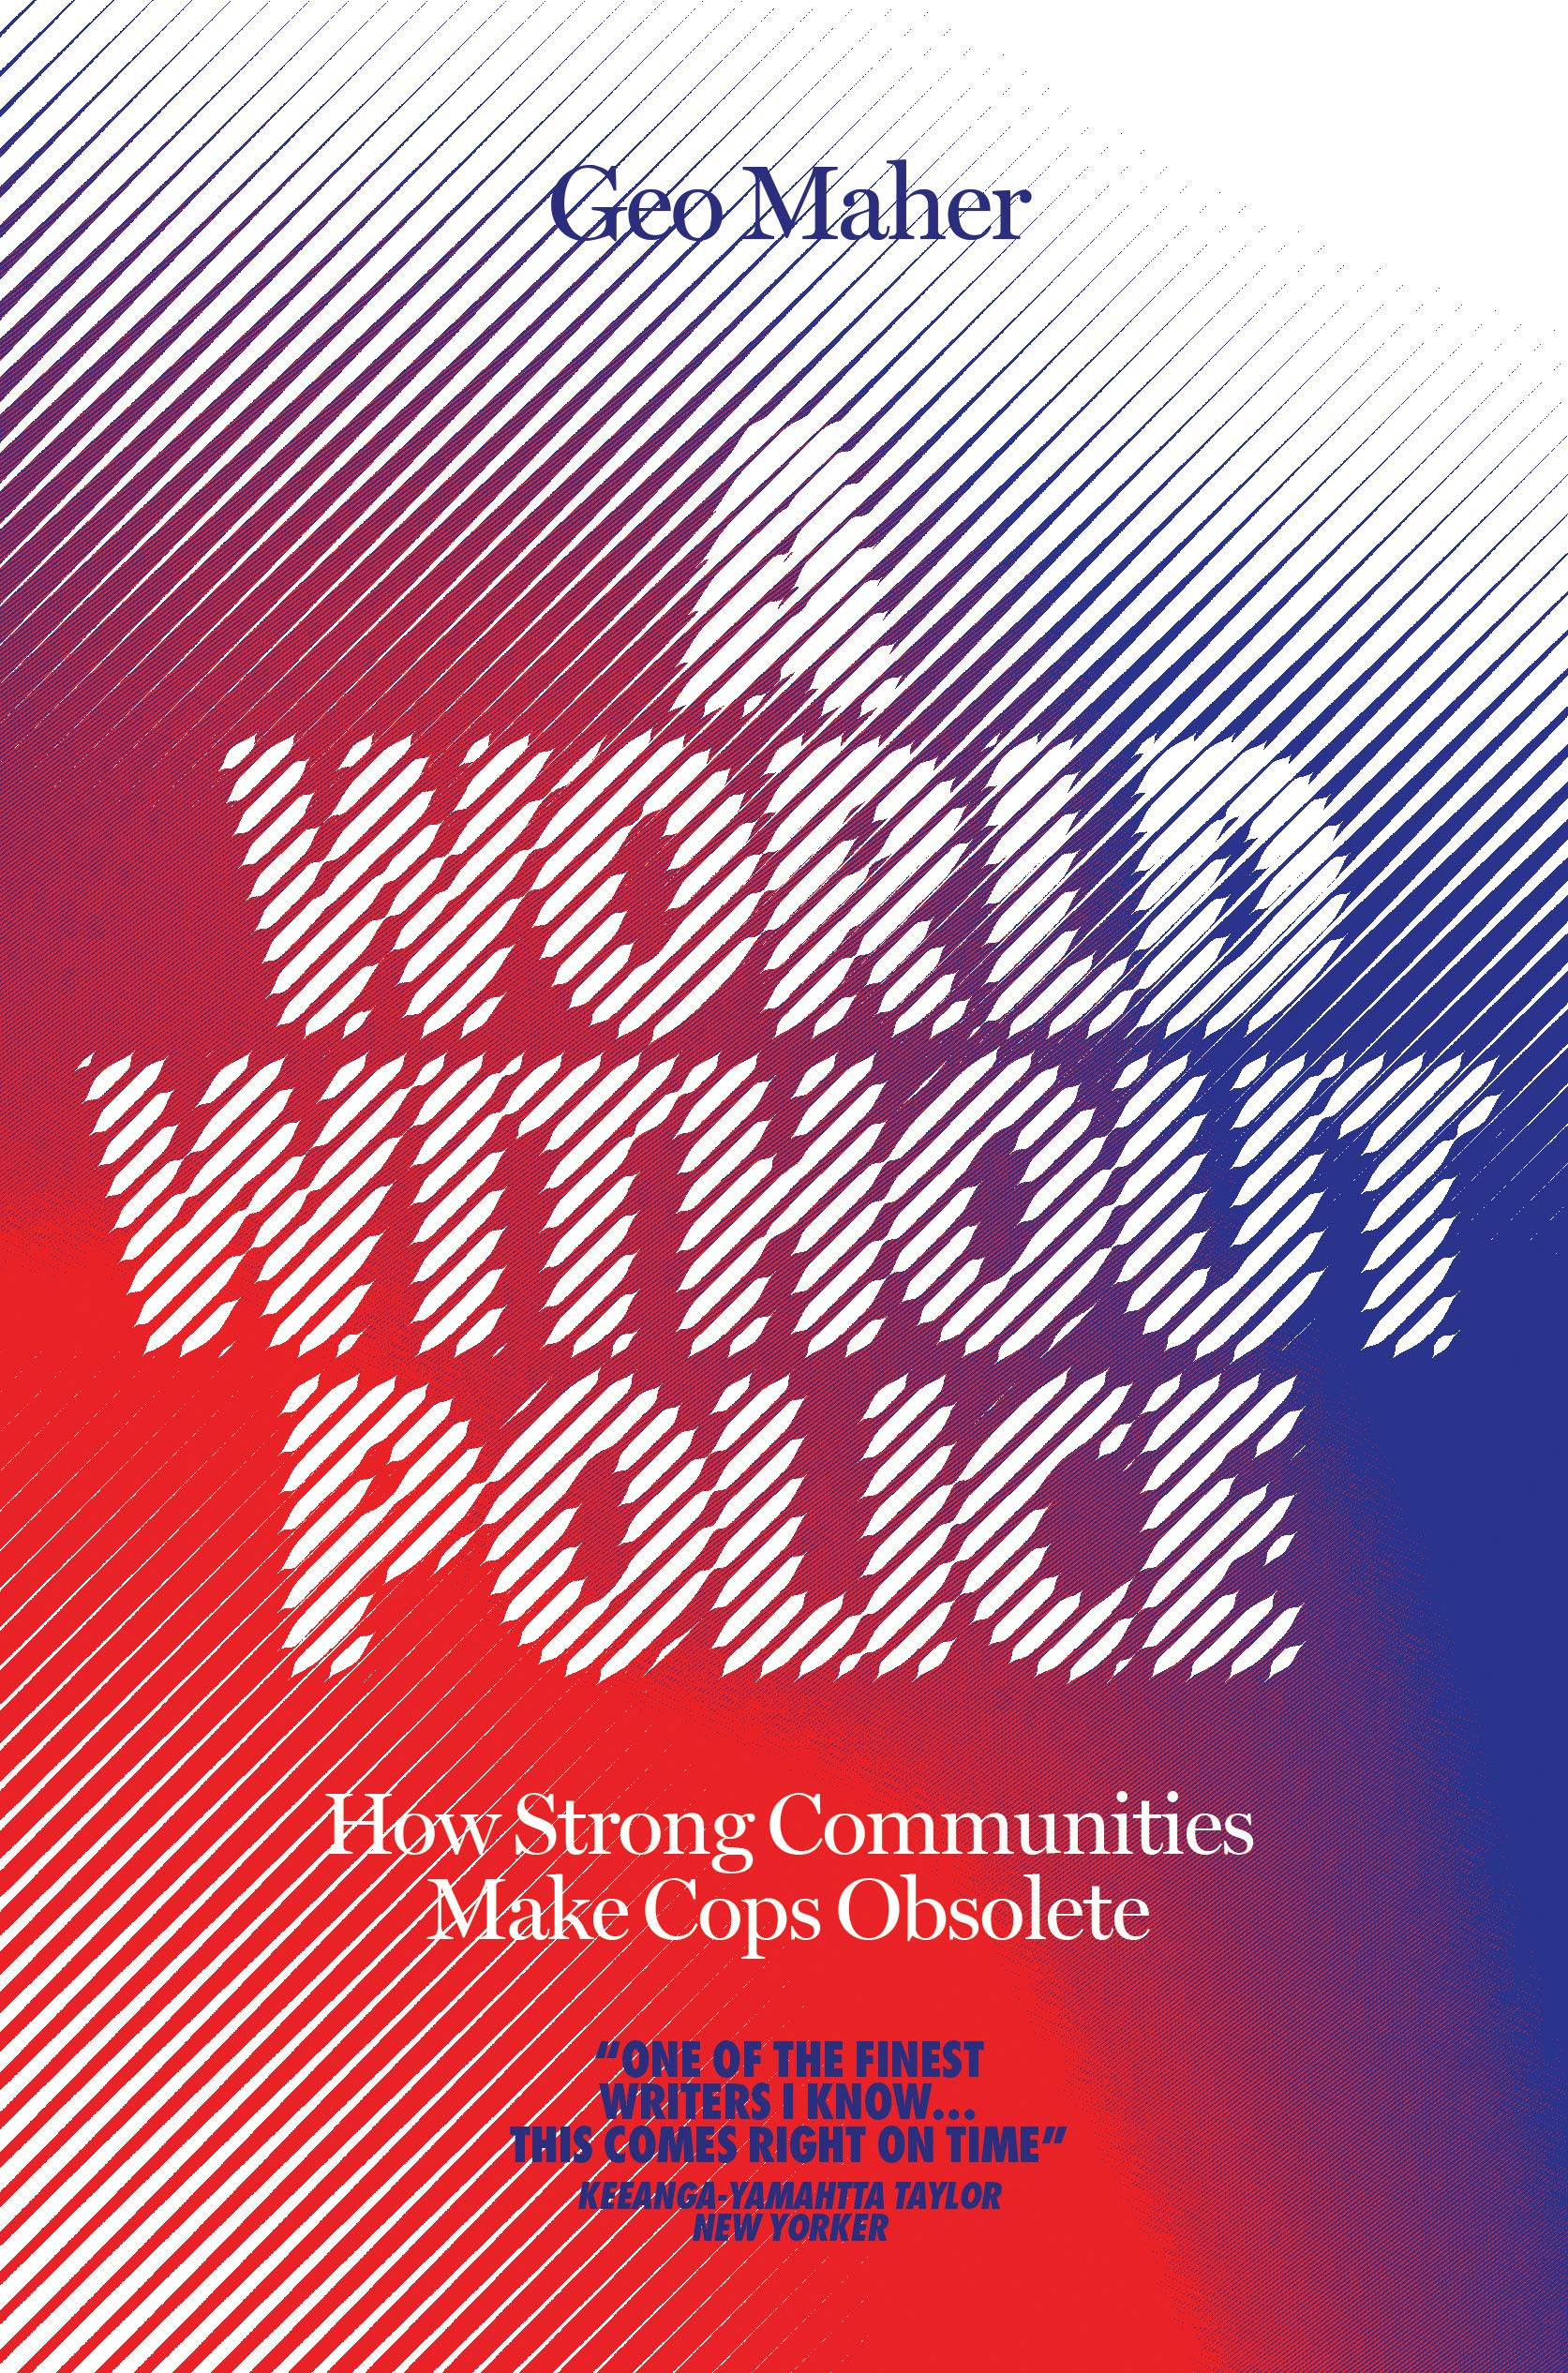 Geo Maher, A World Without Police: How Strong Communities Make Cops Obsolete